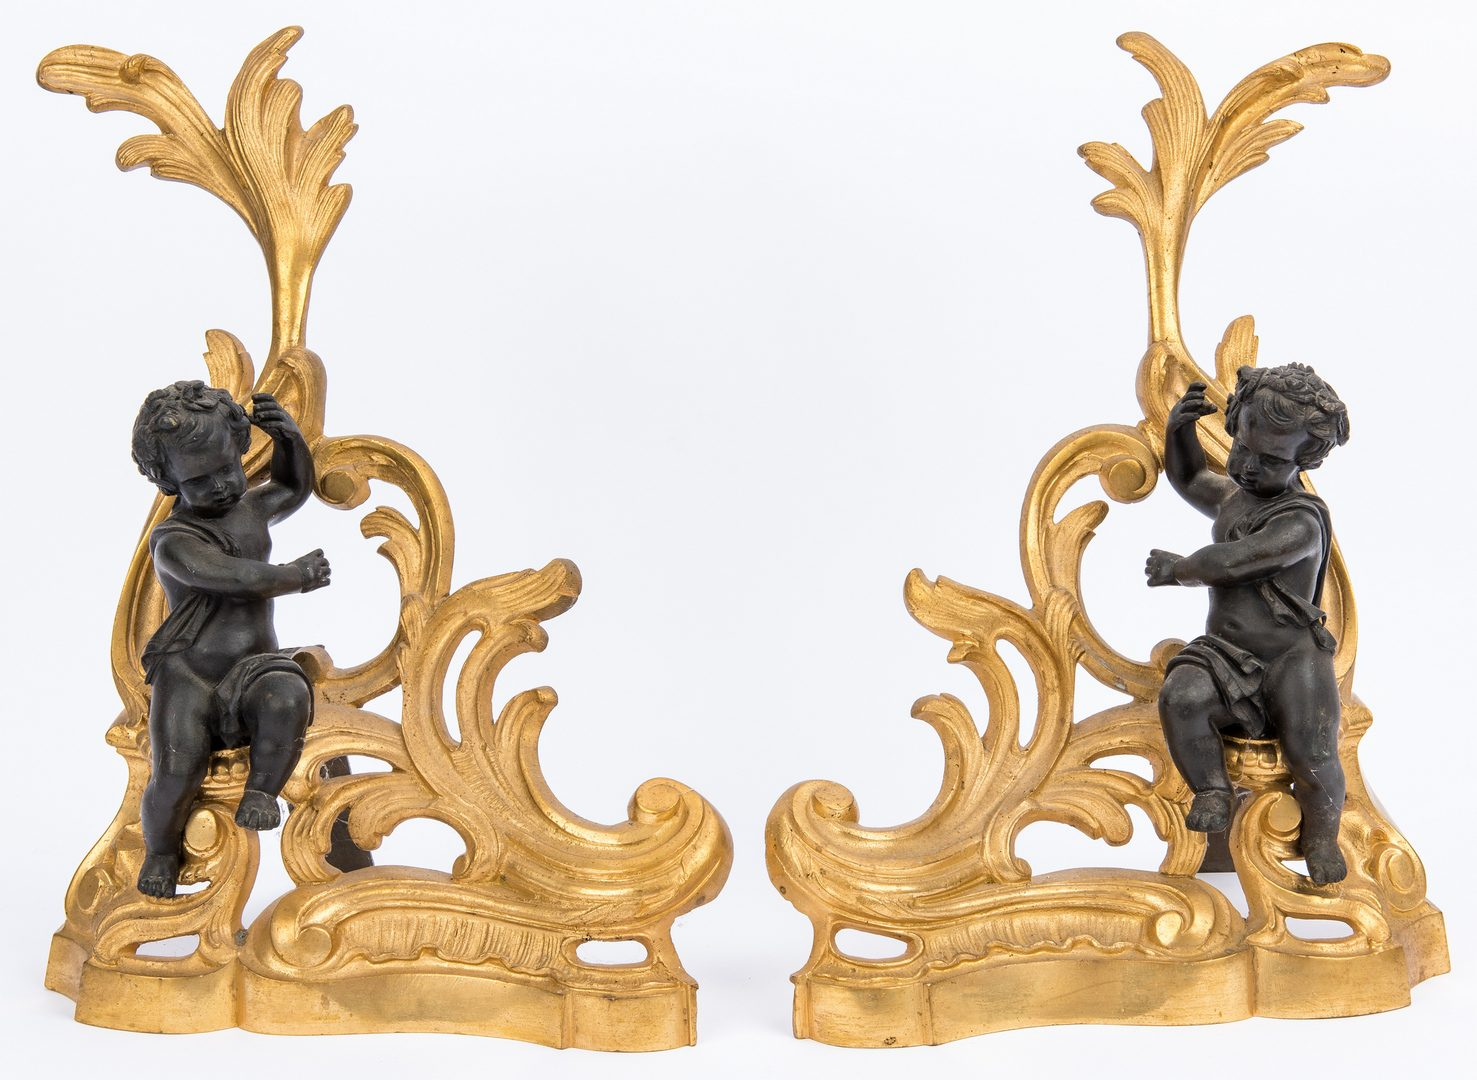 Lot 153: French Gilt Bronze Fireplace Fender & Chenets